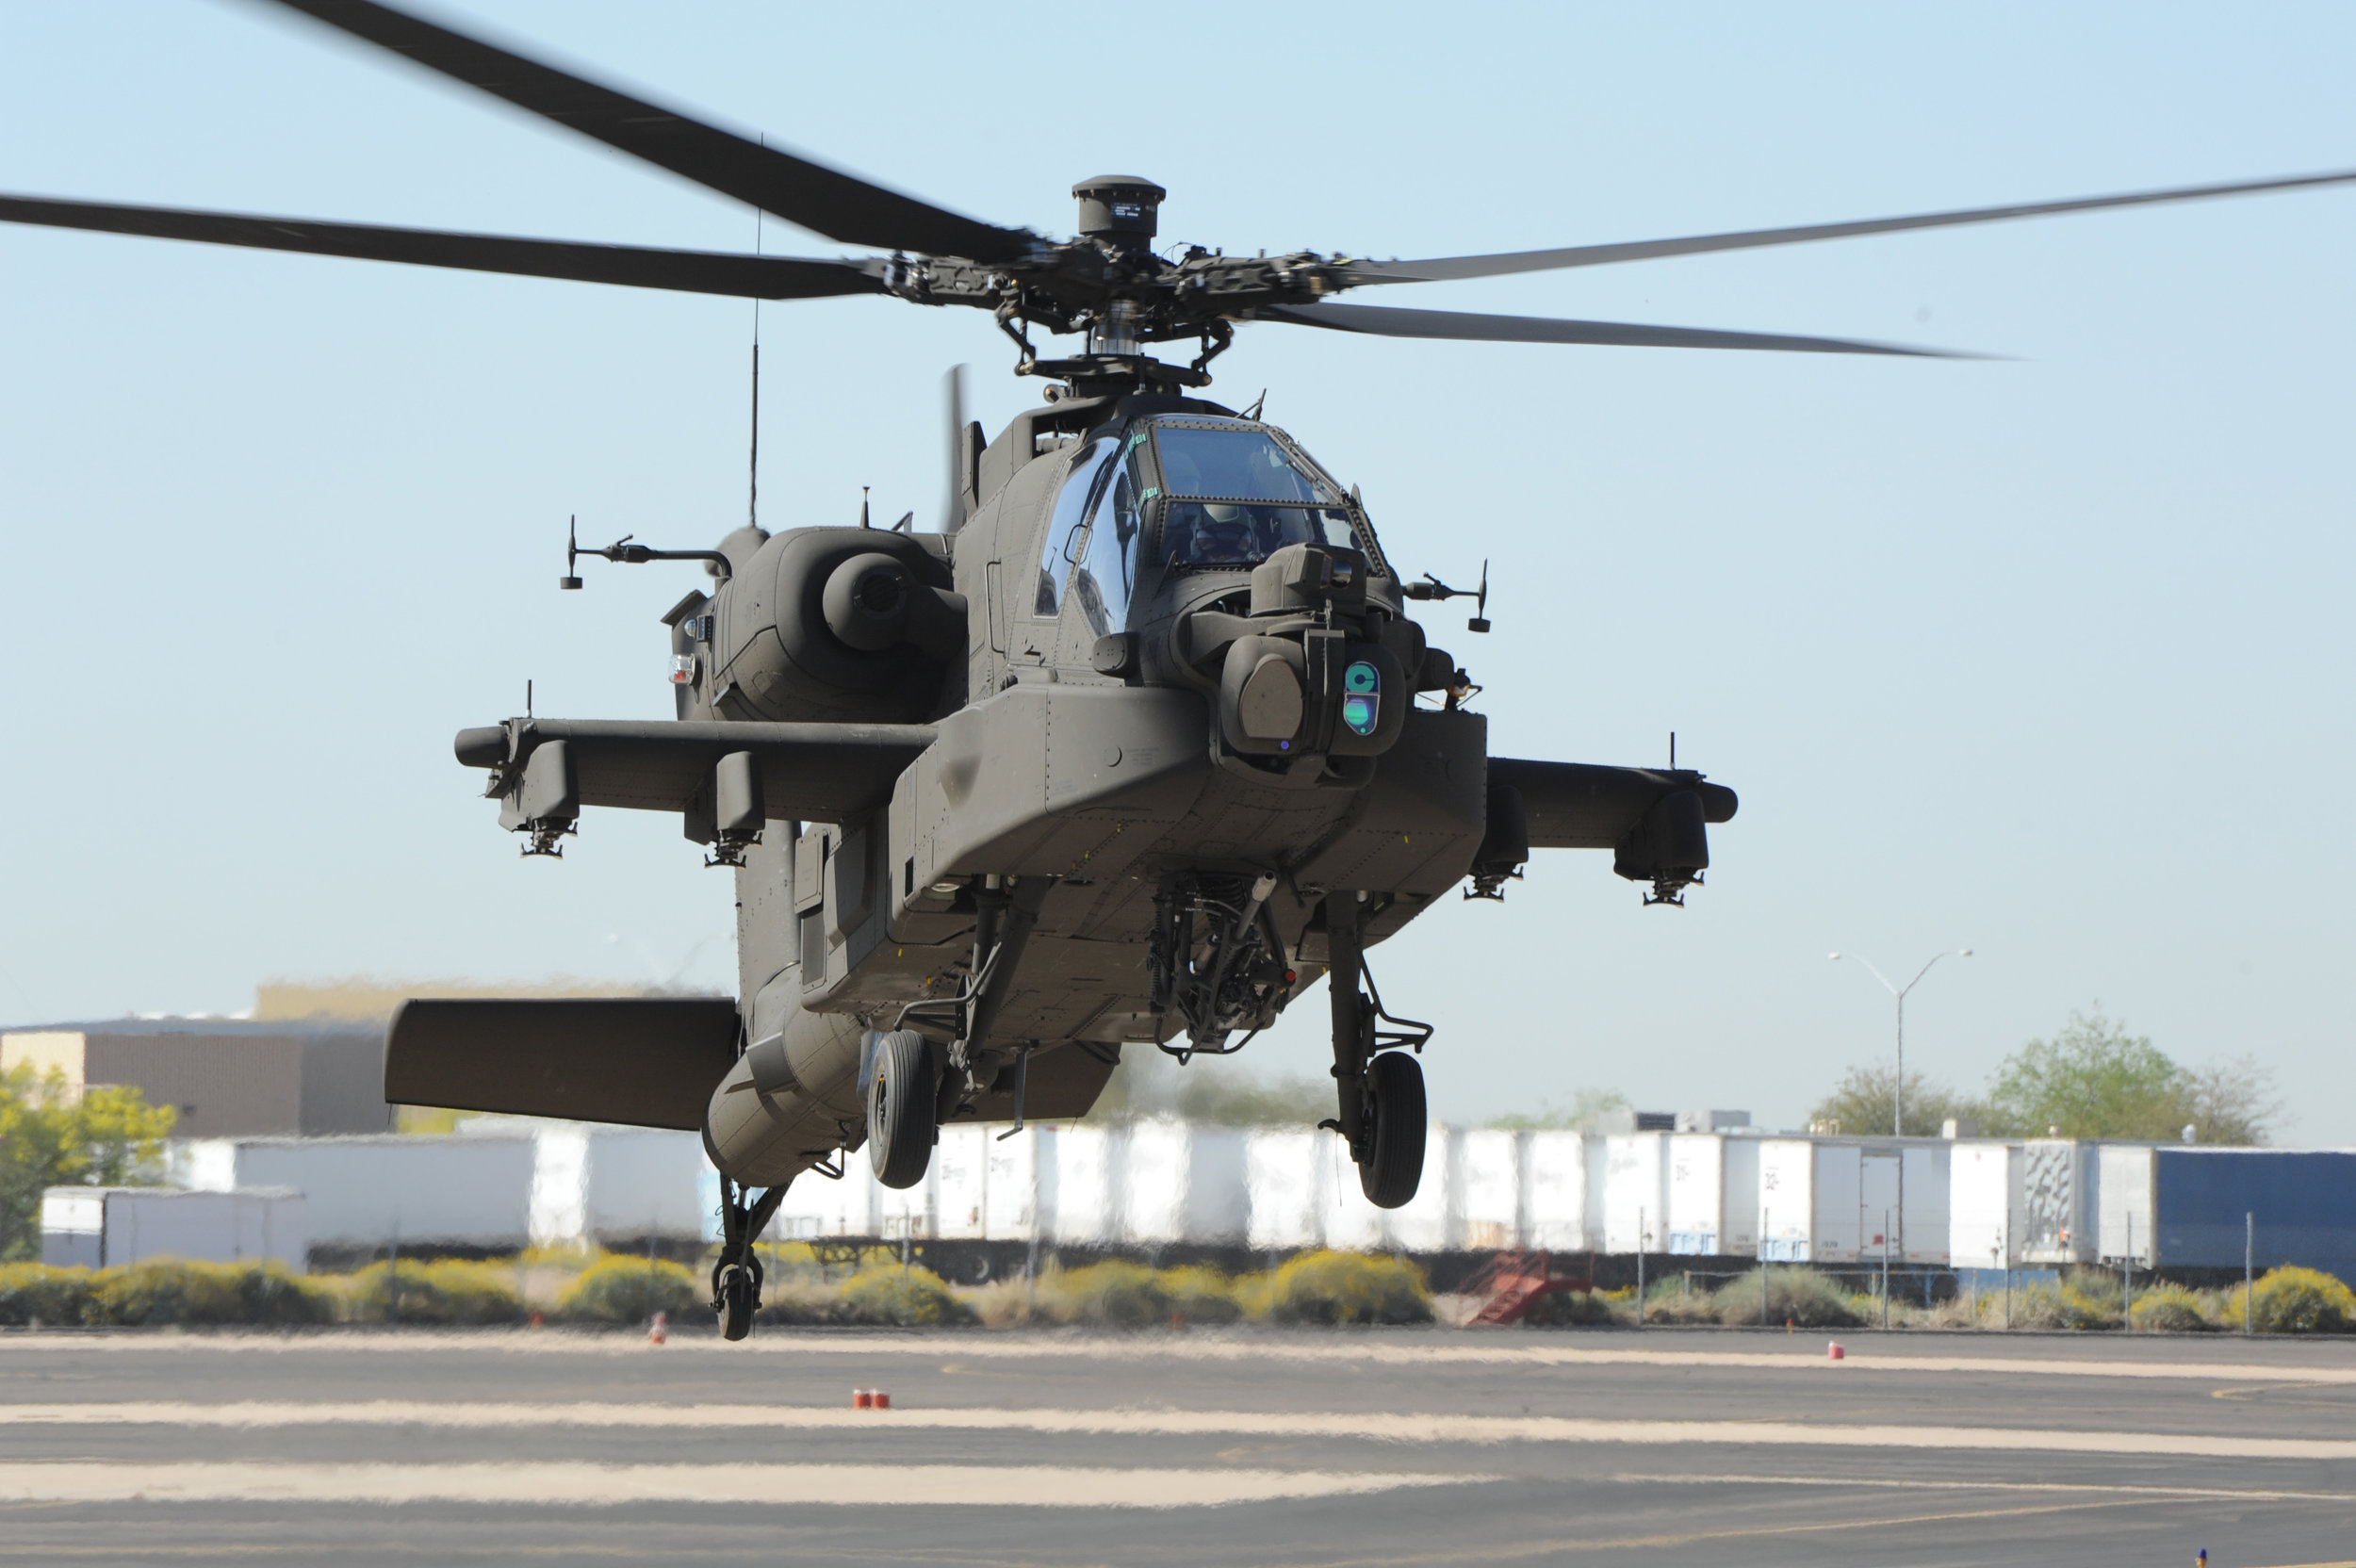 An upgraded Apache helicopter conducts a test flight at Boeing's production facility at Mesa, Arizona.